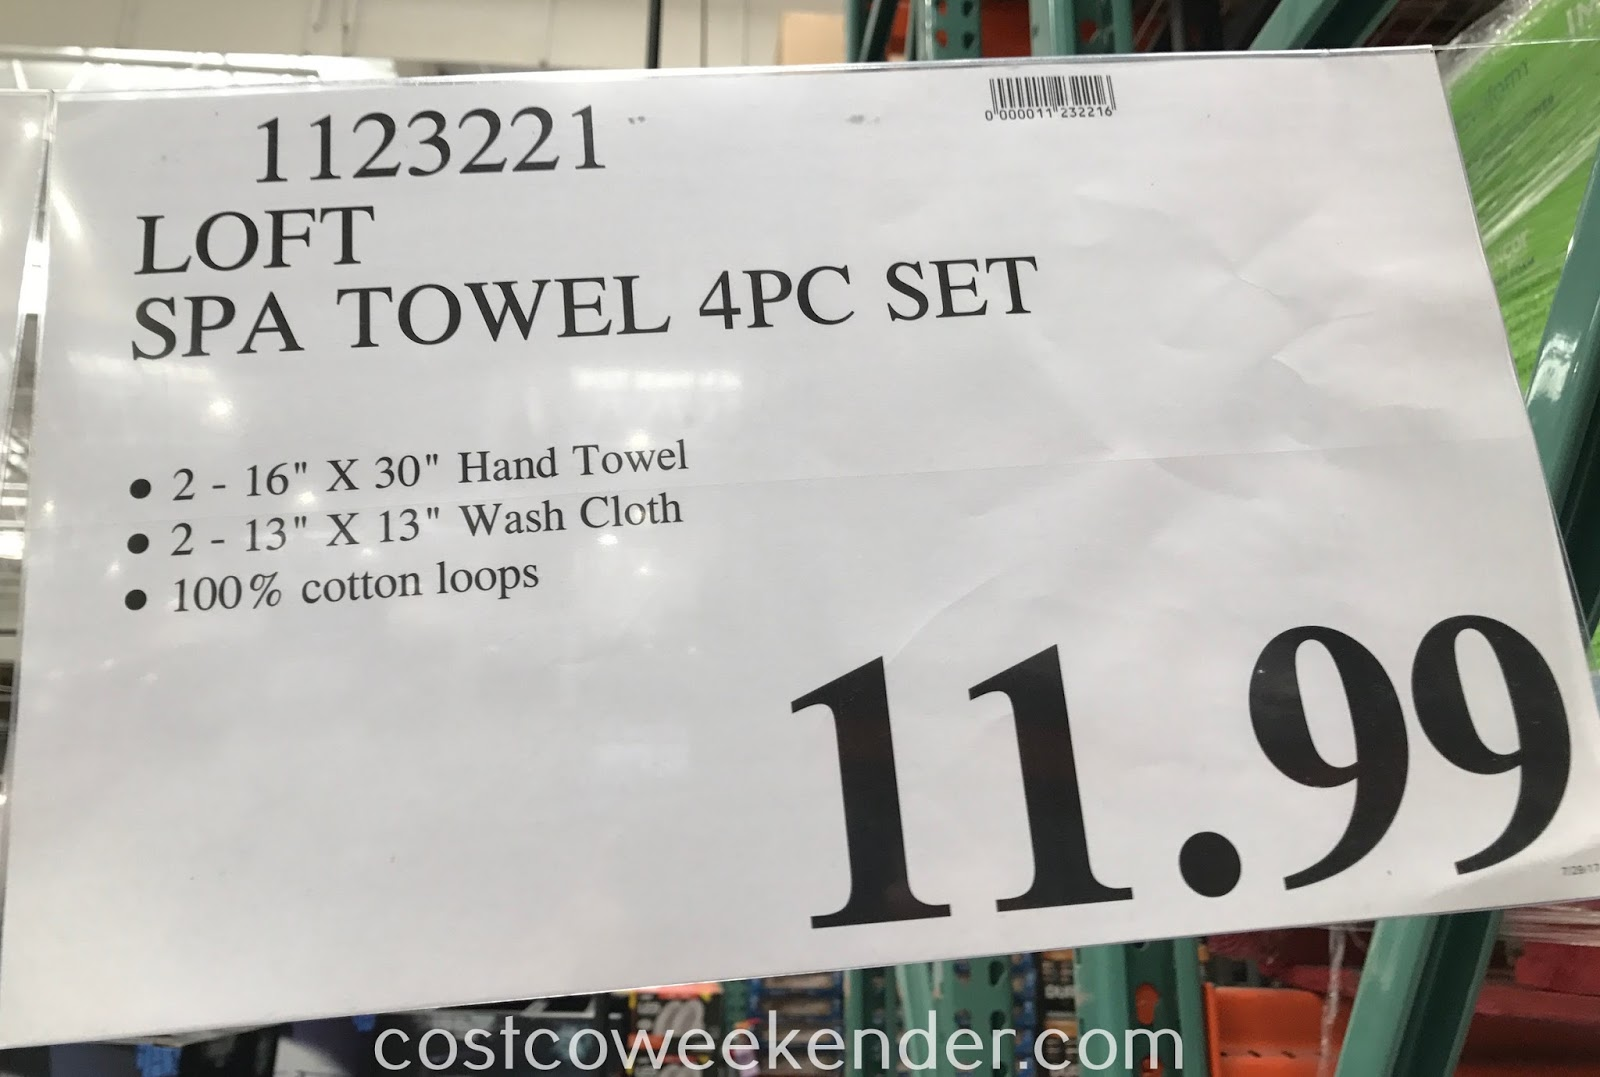 Deal for the Loft Spa Towel 4 piece Set at Costco